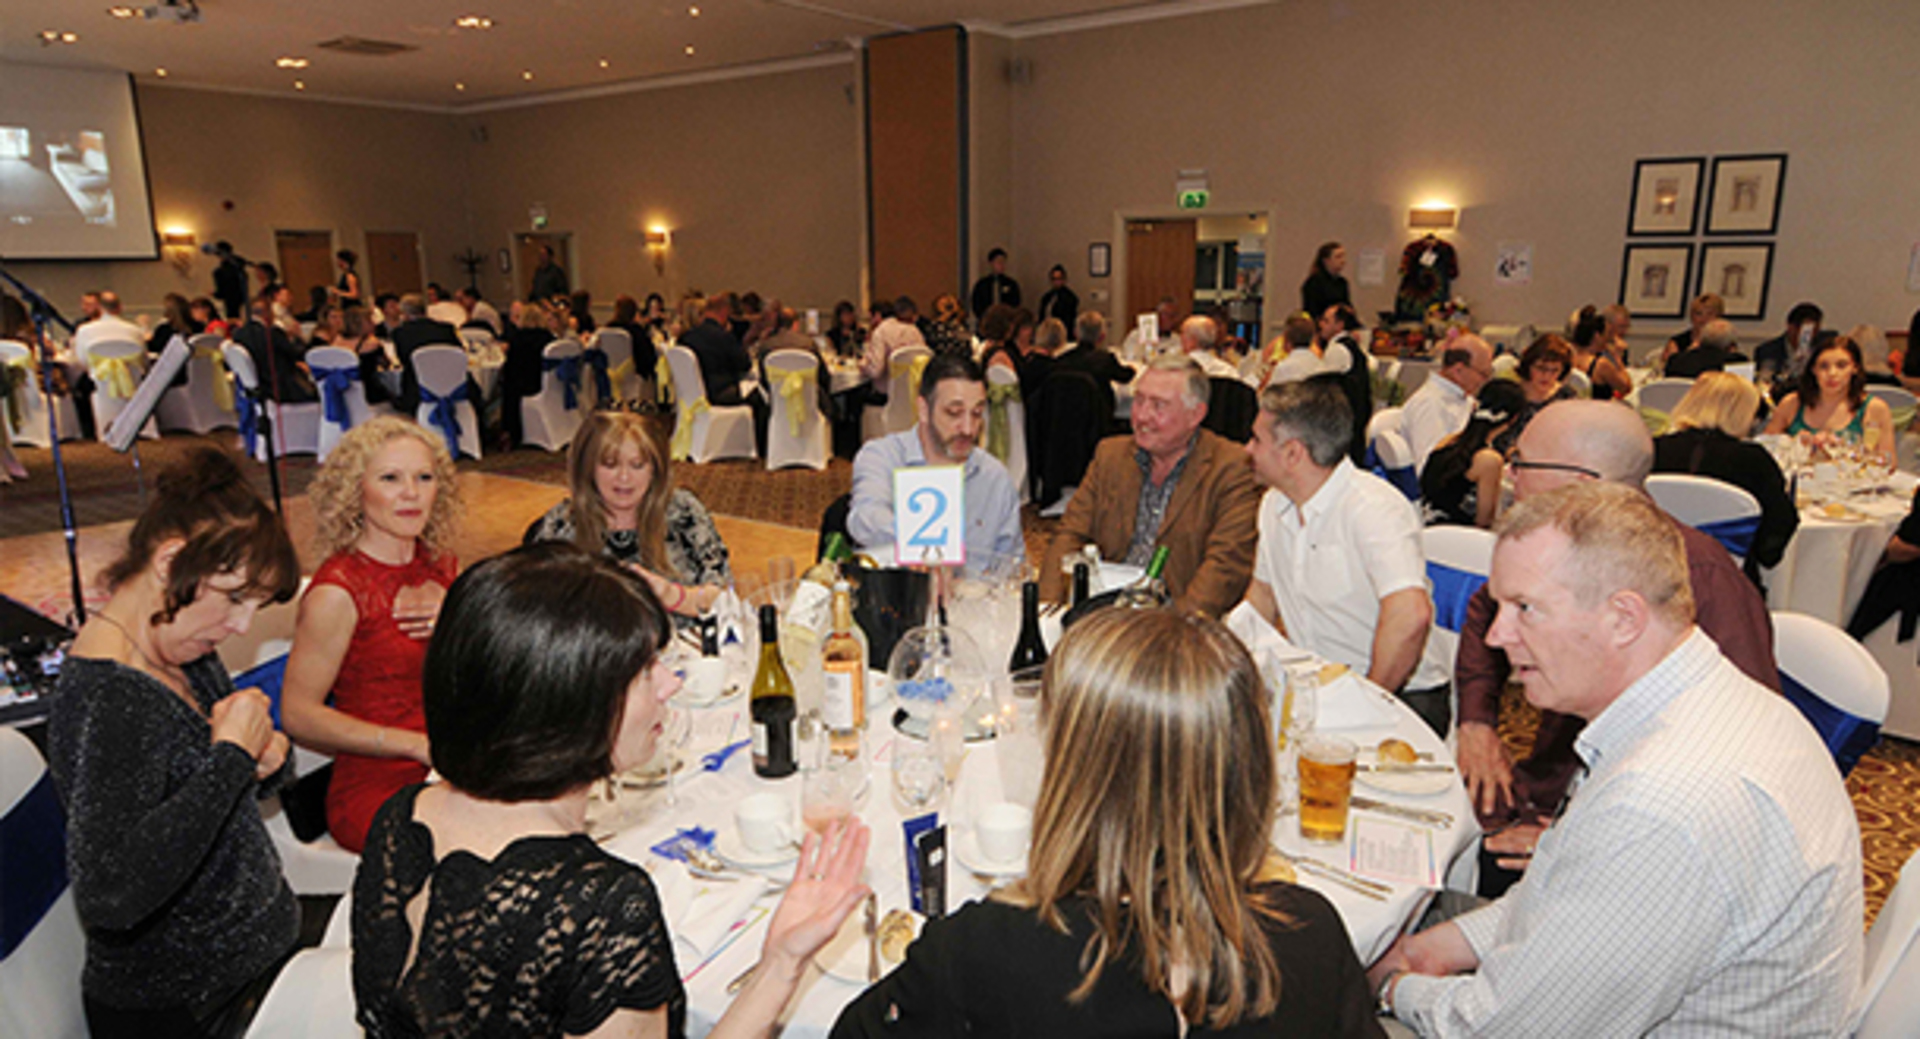 Students organise and run successful charity dinner